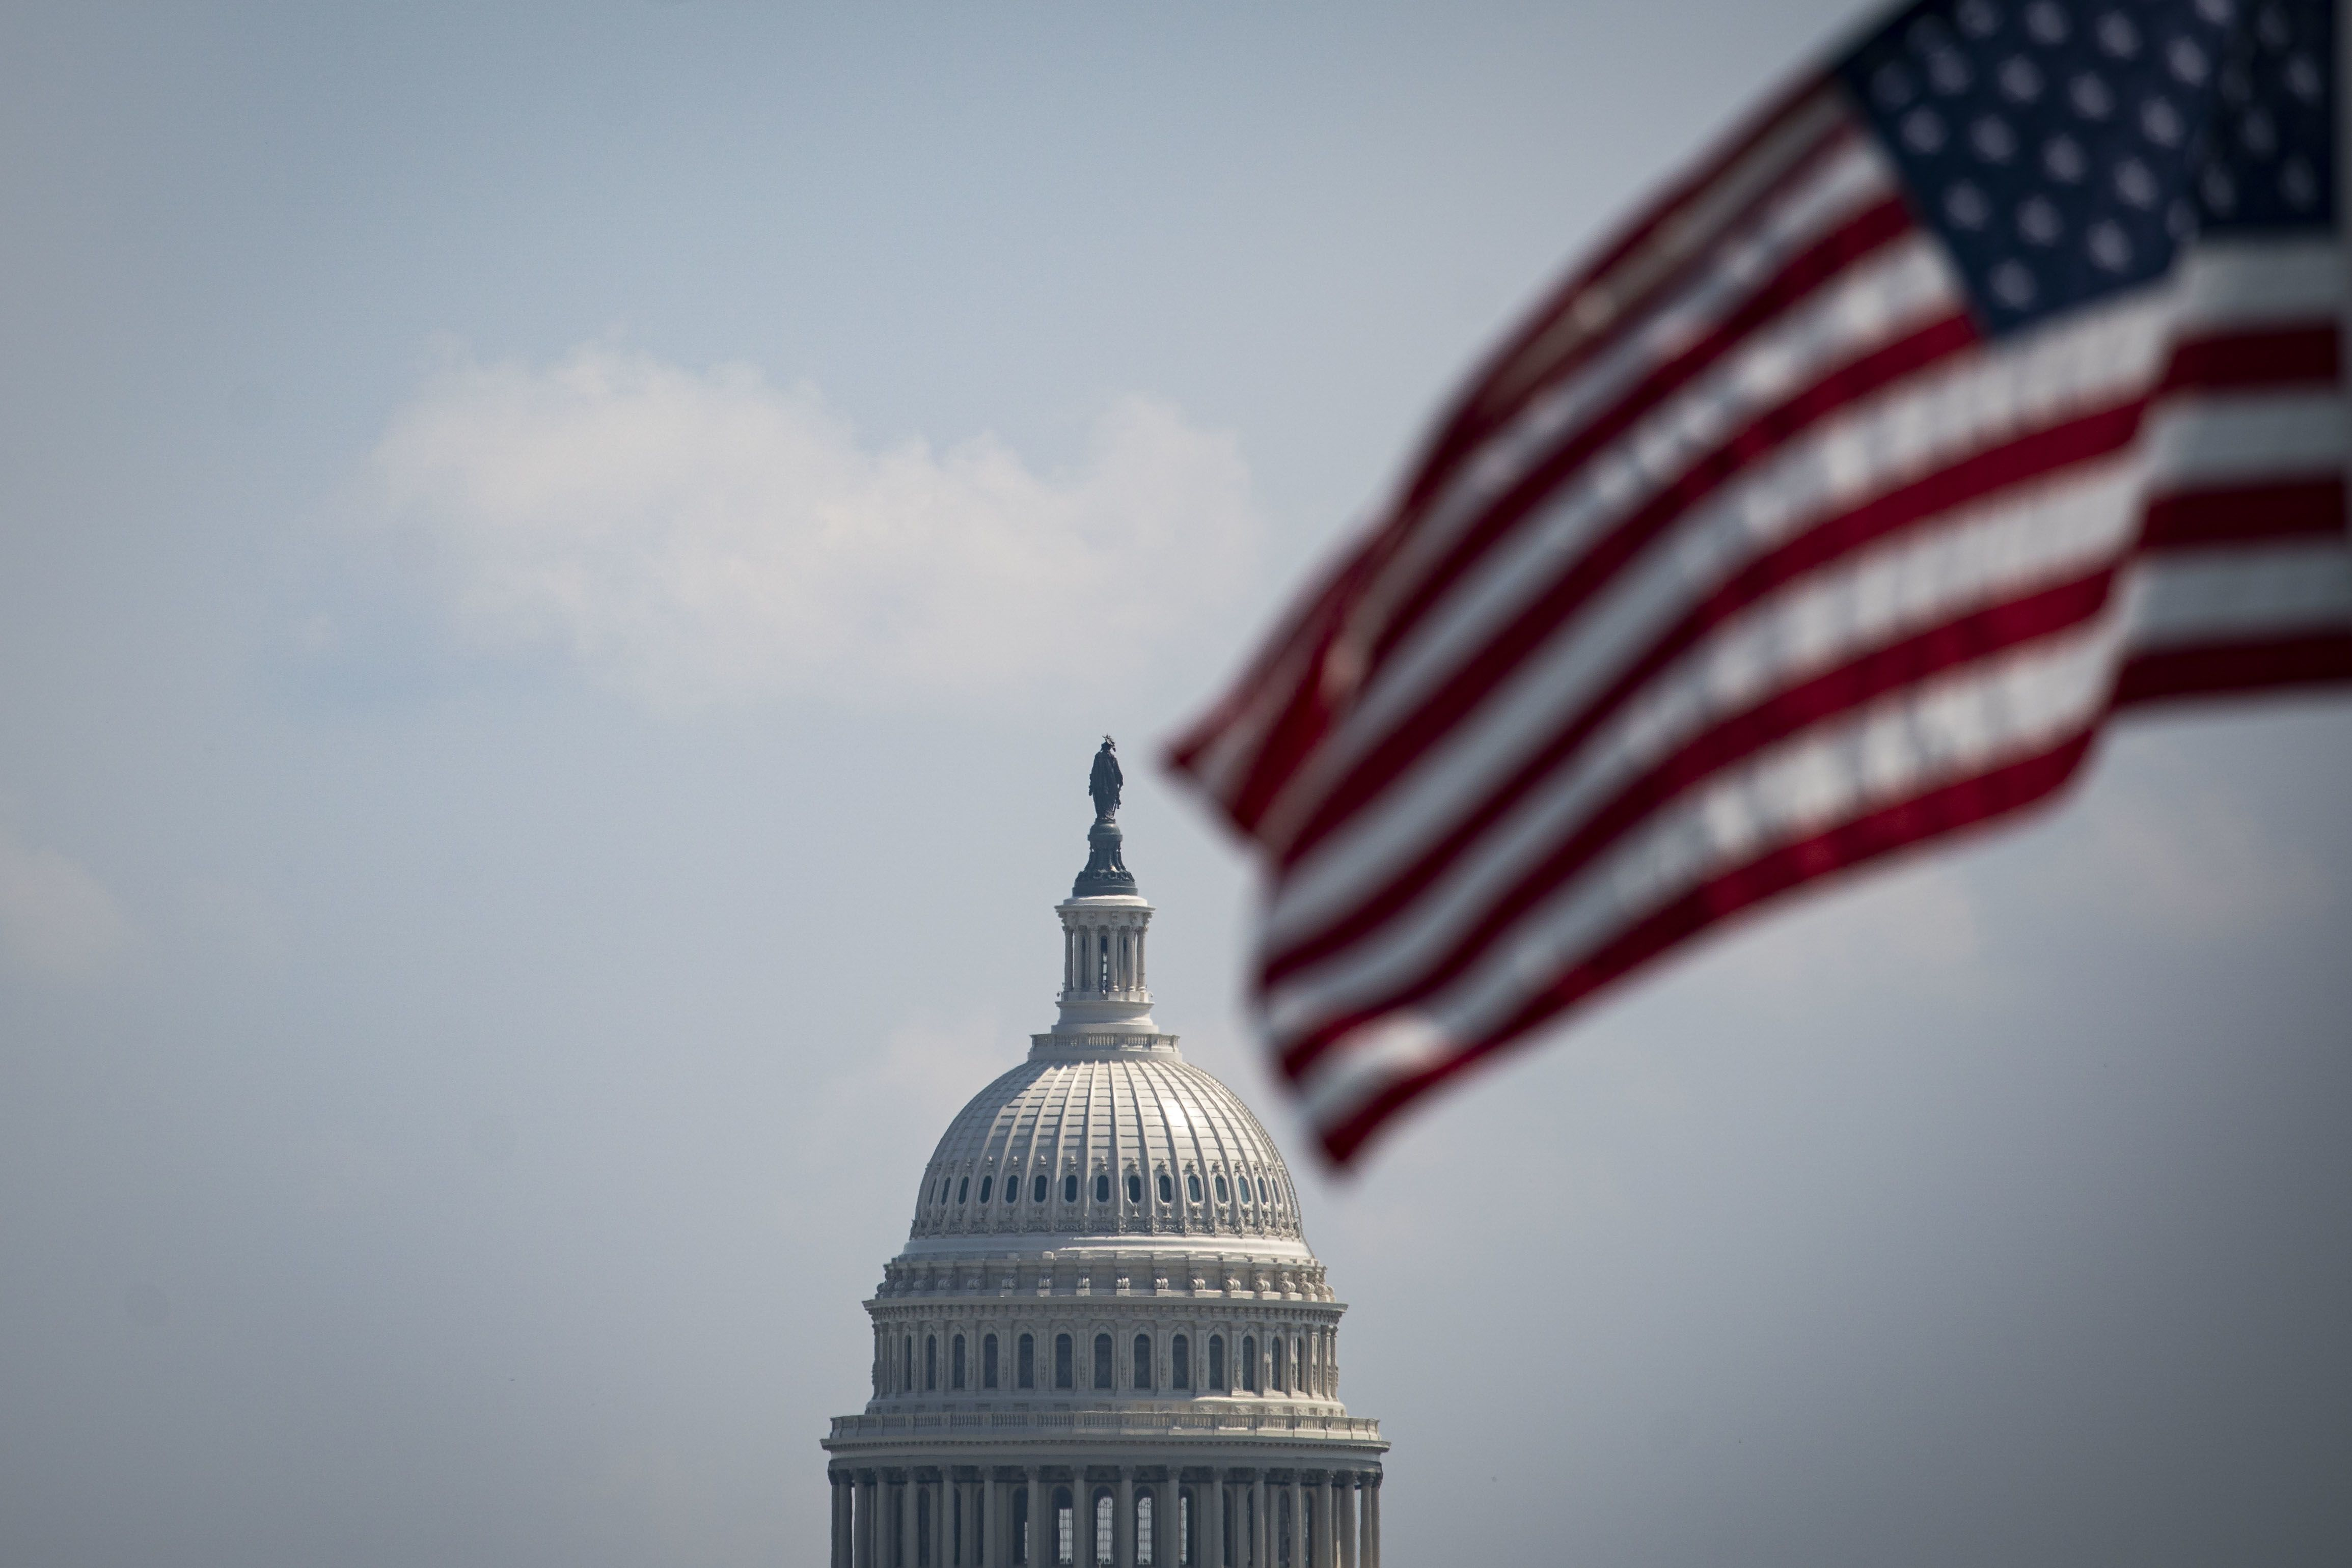 The end of the fiscal year on September 30 is looming for Congress, which must pass a fundraising bill to avoid a government shutdown.